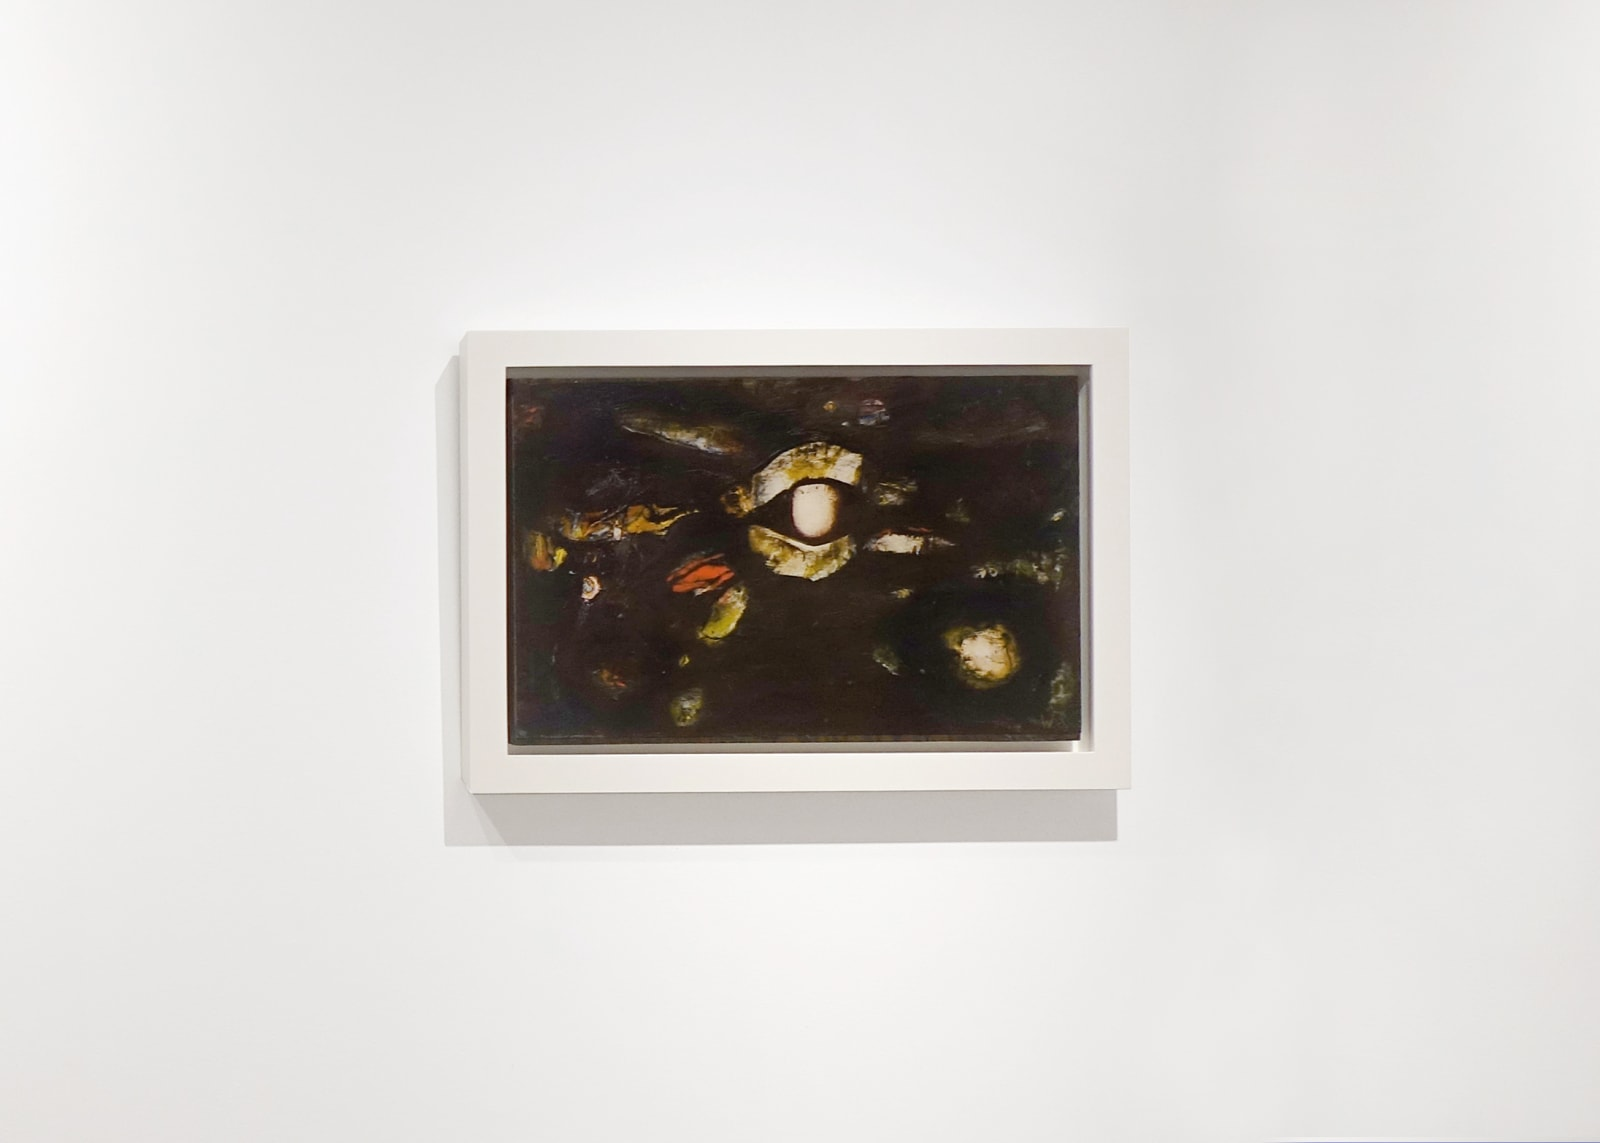 Lid's Night, 1964, Oil on paper mounted to board, 12 1/2 x 19 1/2 inches